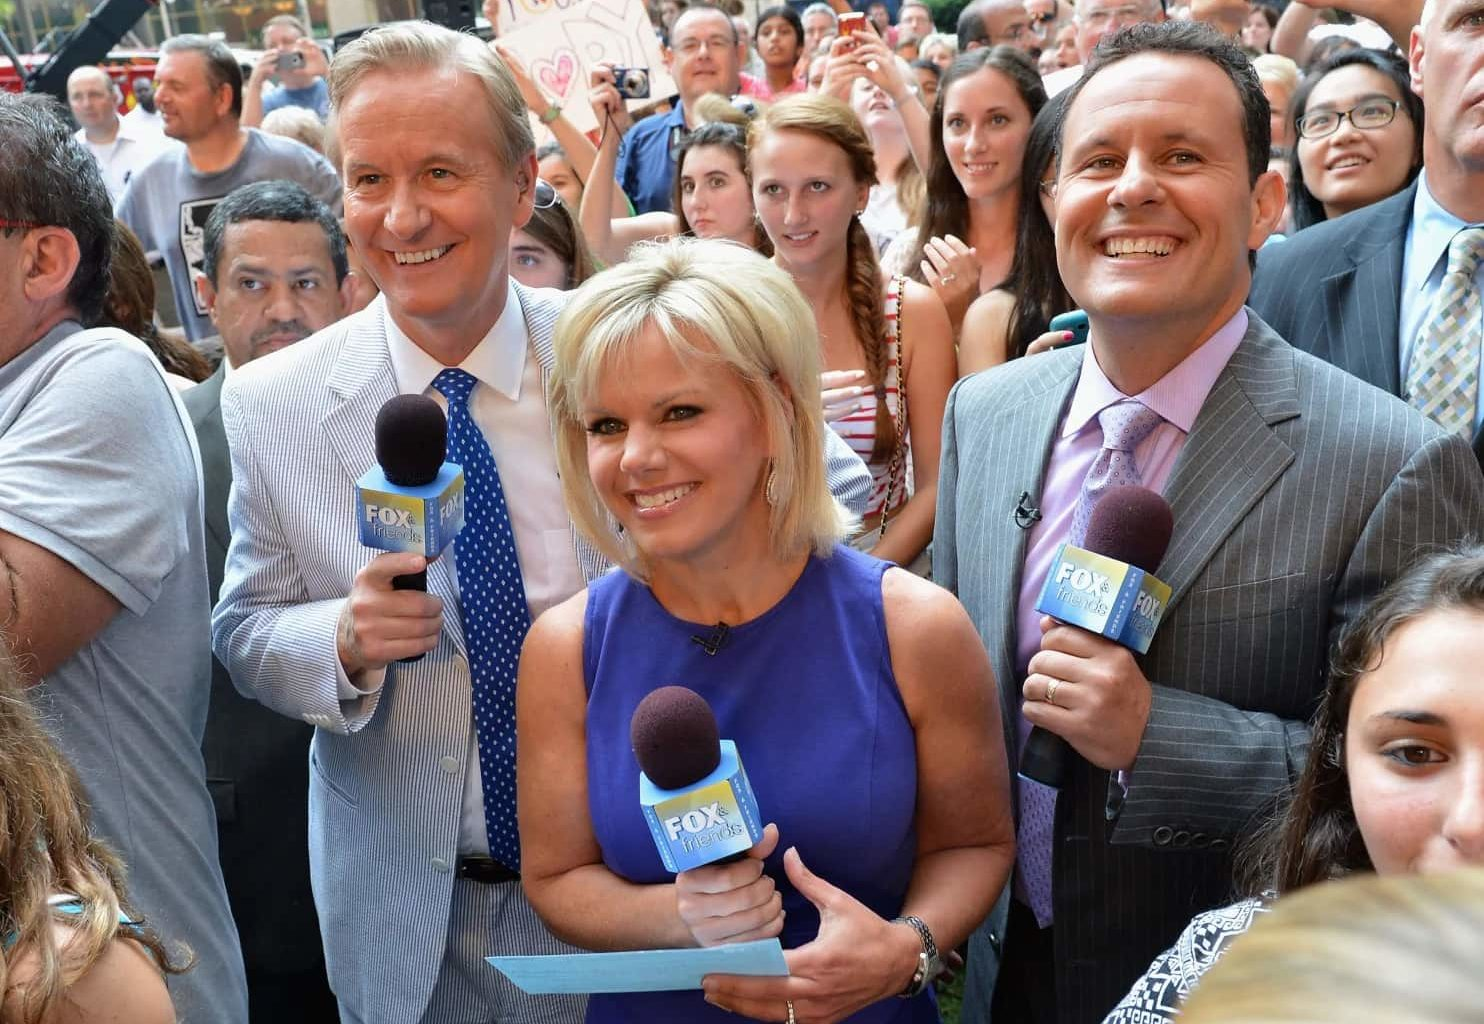 Fox & Friends With Benefits Gretchen Carlson Sues Fox News CEO Over Pervasive Sexual Harassment